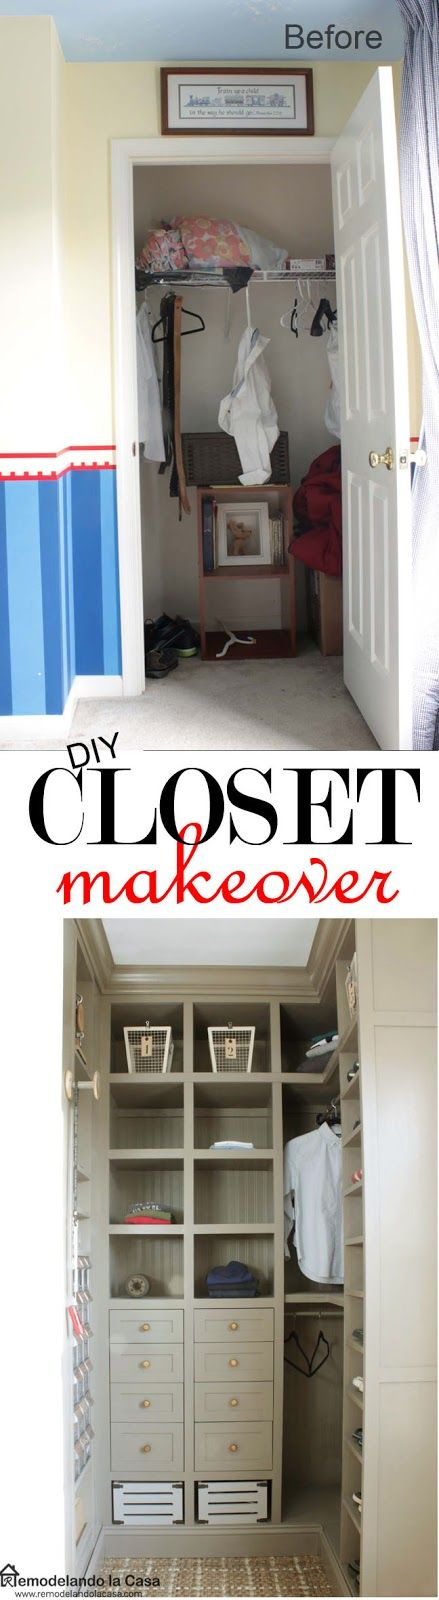 Best 25+ Small closets ideas on Pinterest | Closet redo, Small ...